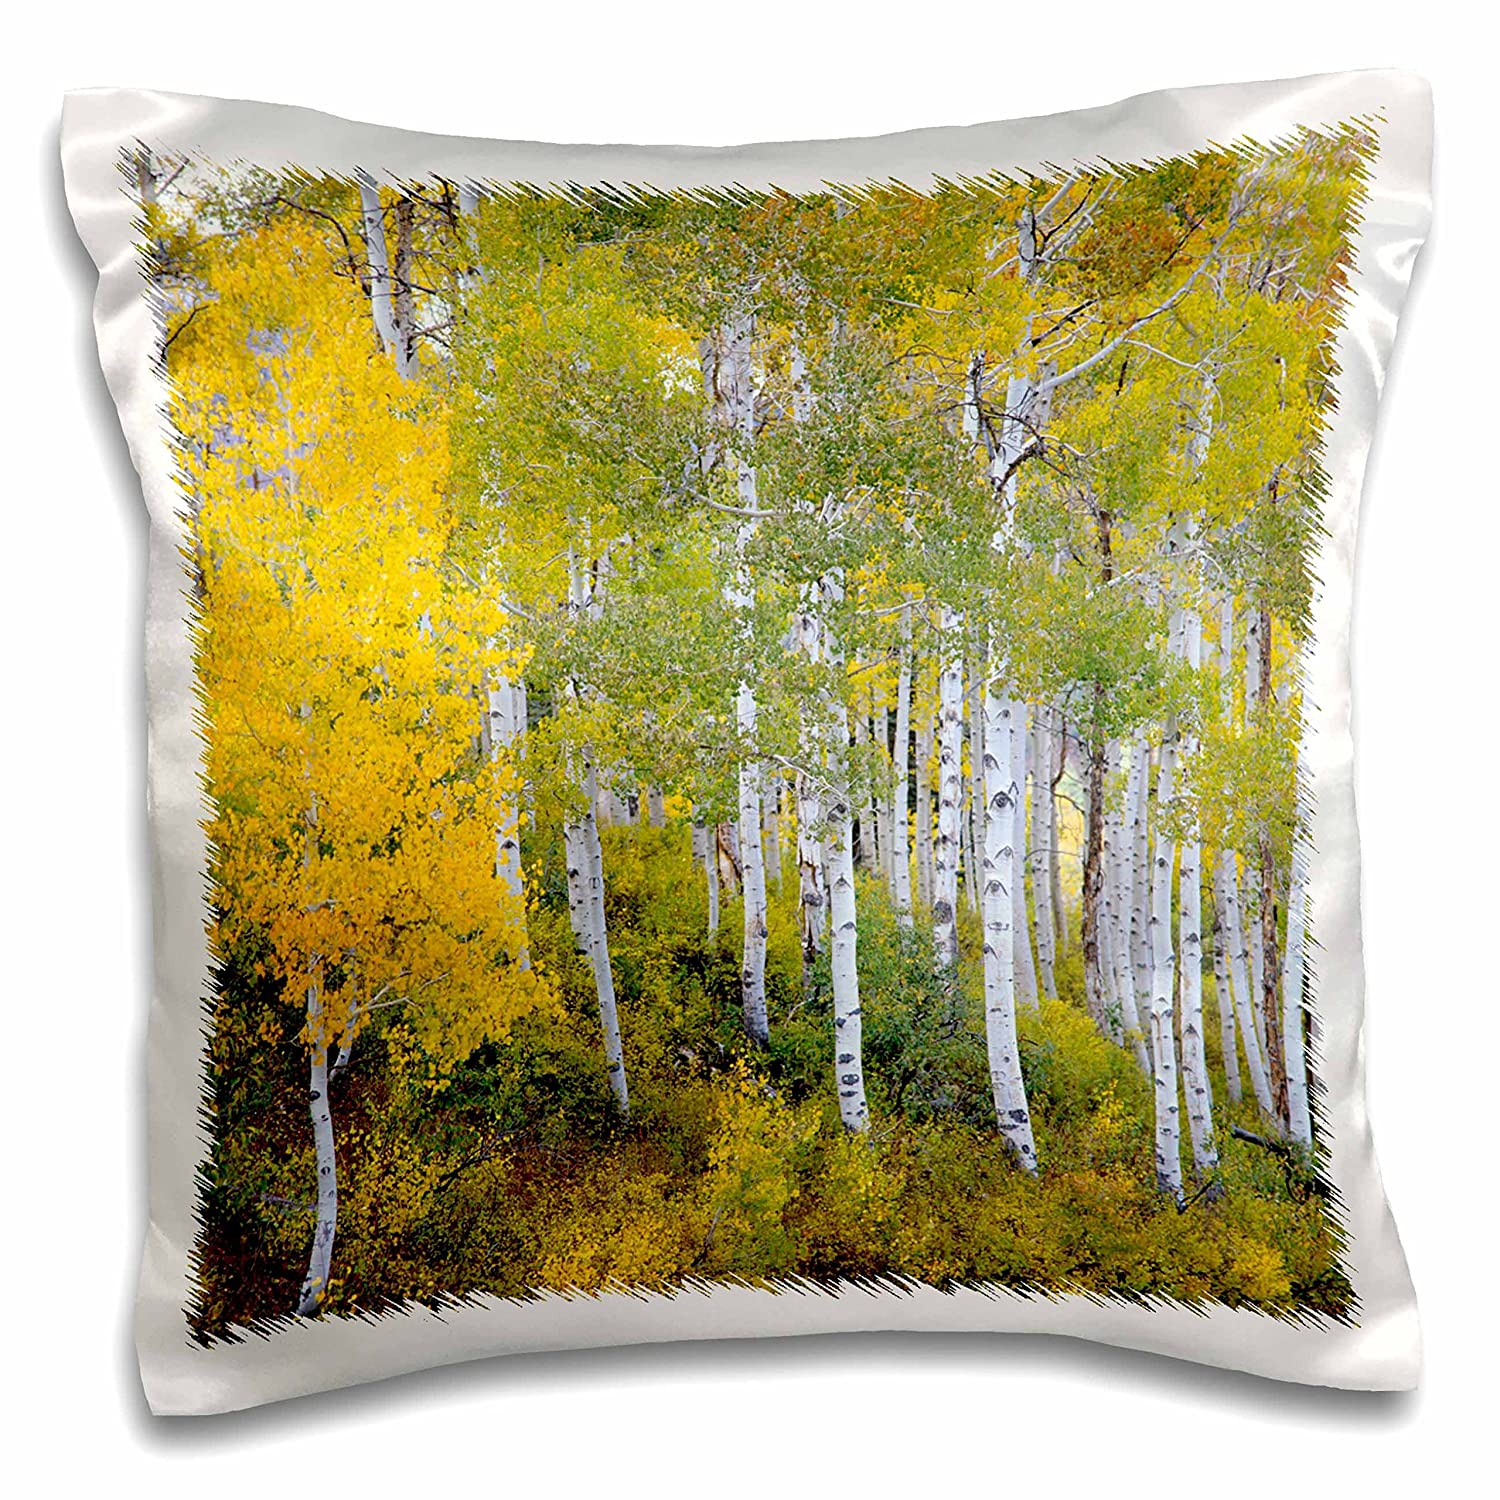 pc/_147316/_1 Utah USA-Us45 Hga0426-Howie Garber-Pillow Case Mt Nebo Wasatch Mountains 3dRose Quaking Aspen 16 by 16